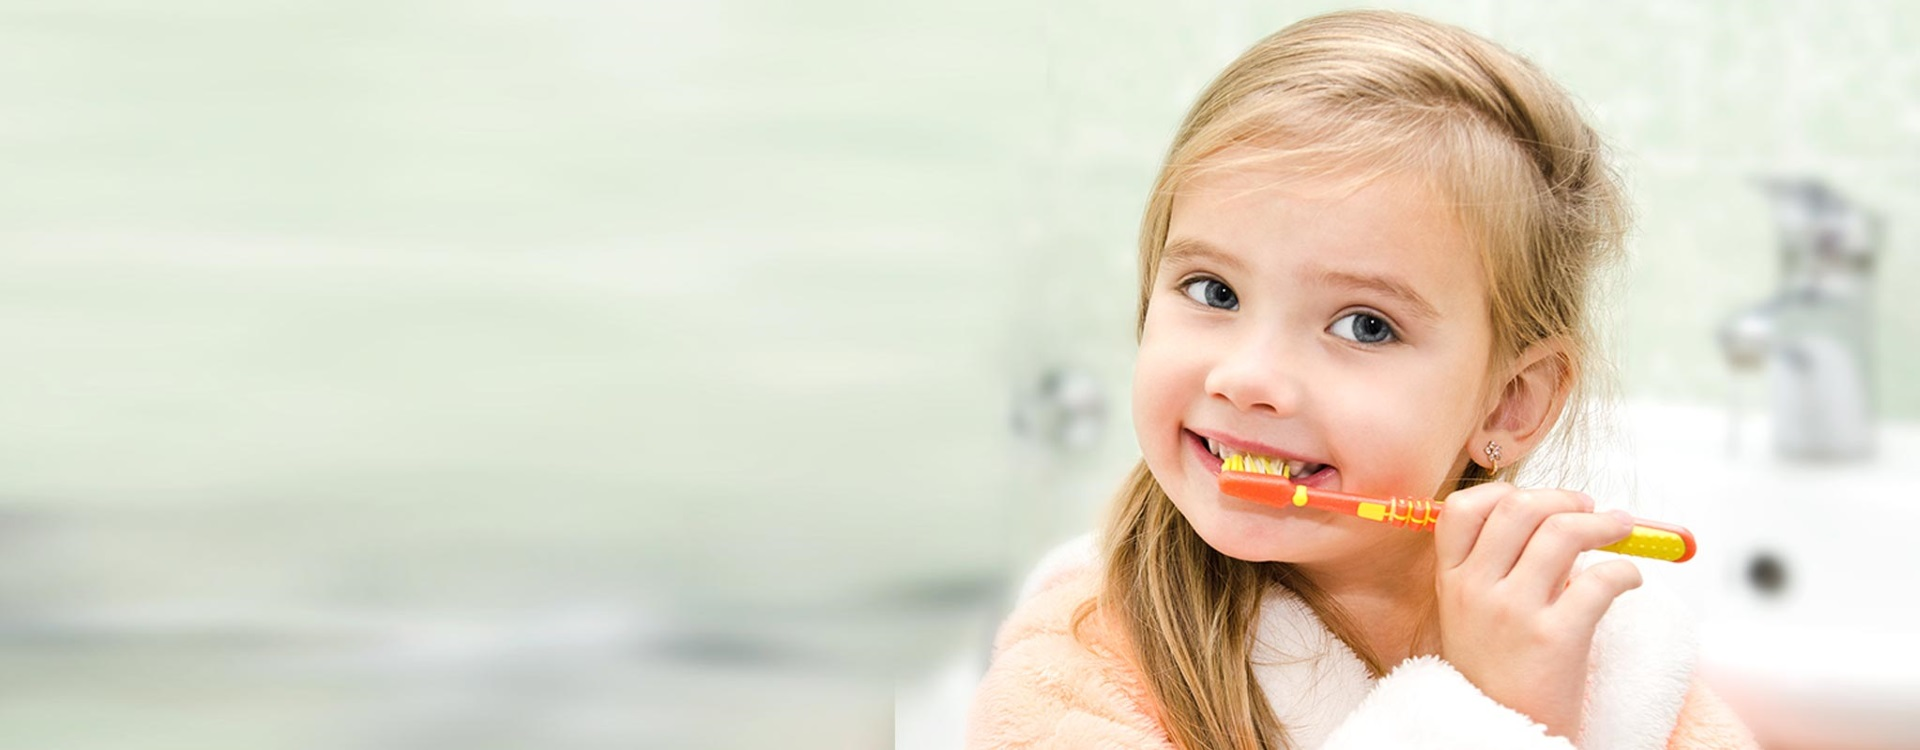 Pediatric-Dentistry-15-1920x750